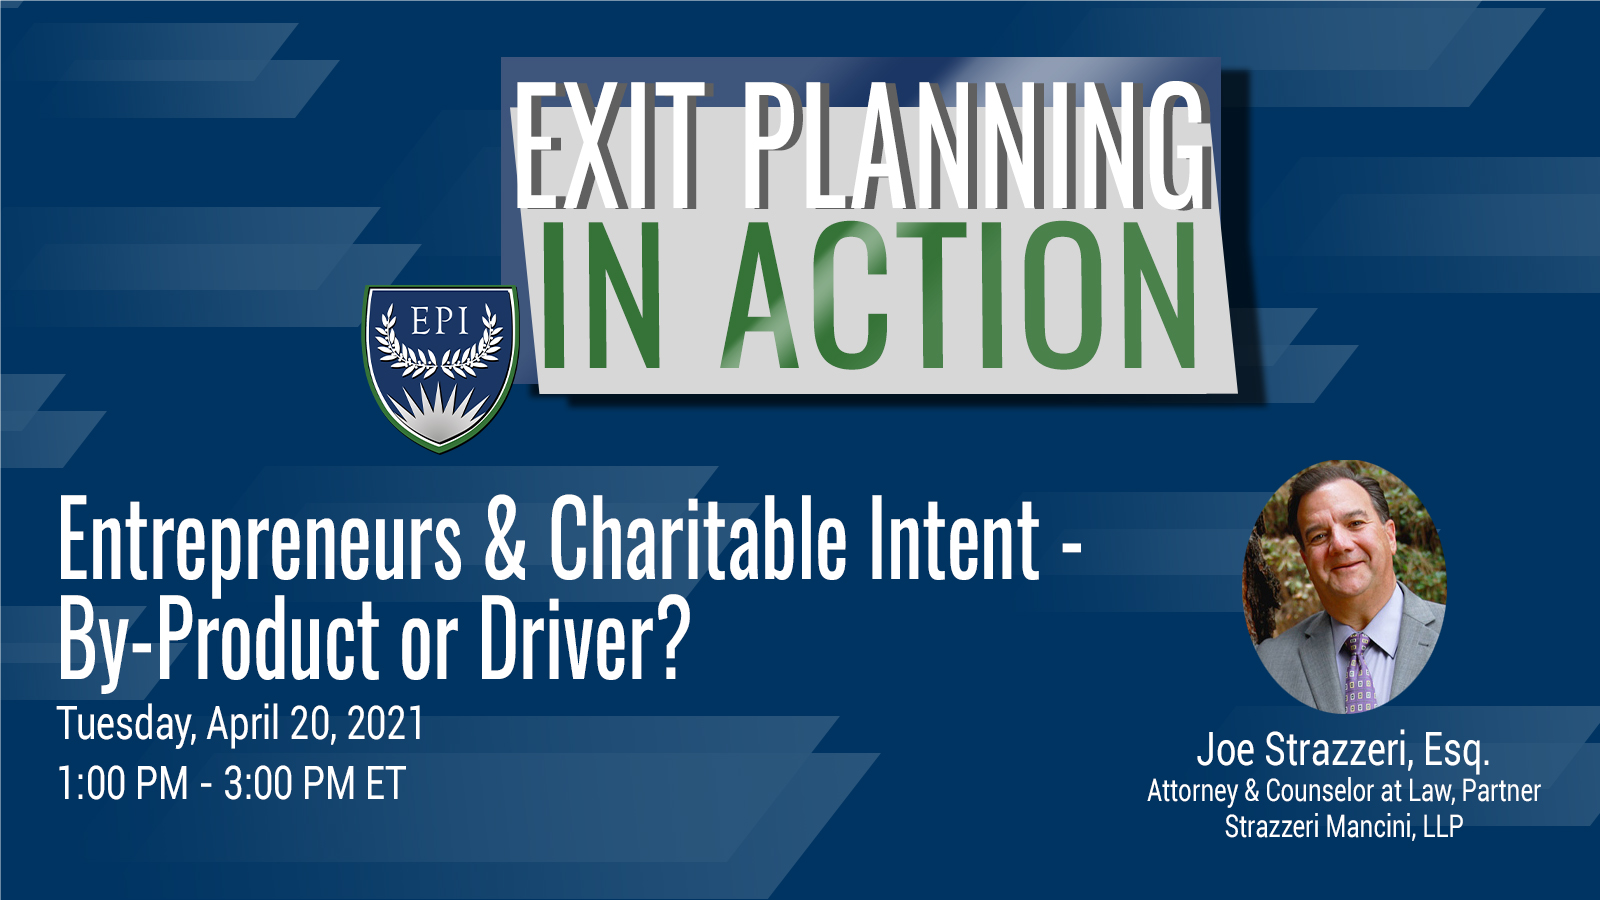 Entrepreneurs & Charitable Intent - By-Product or Driver?